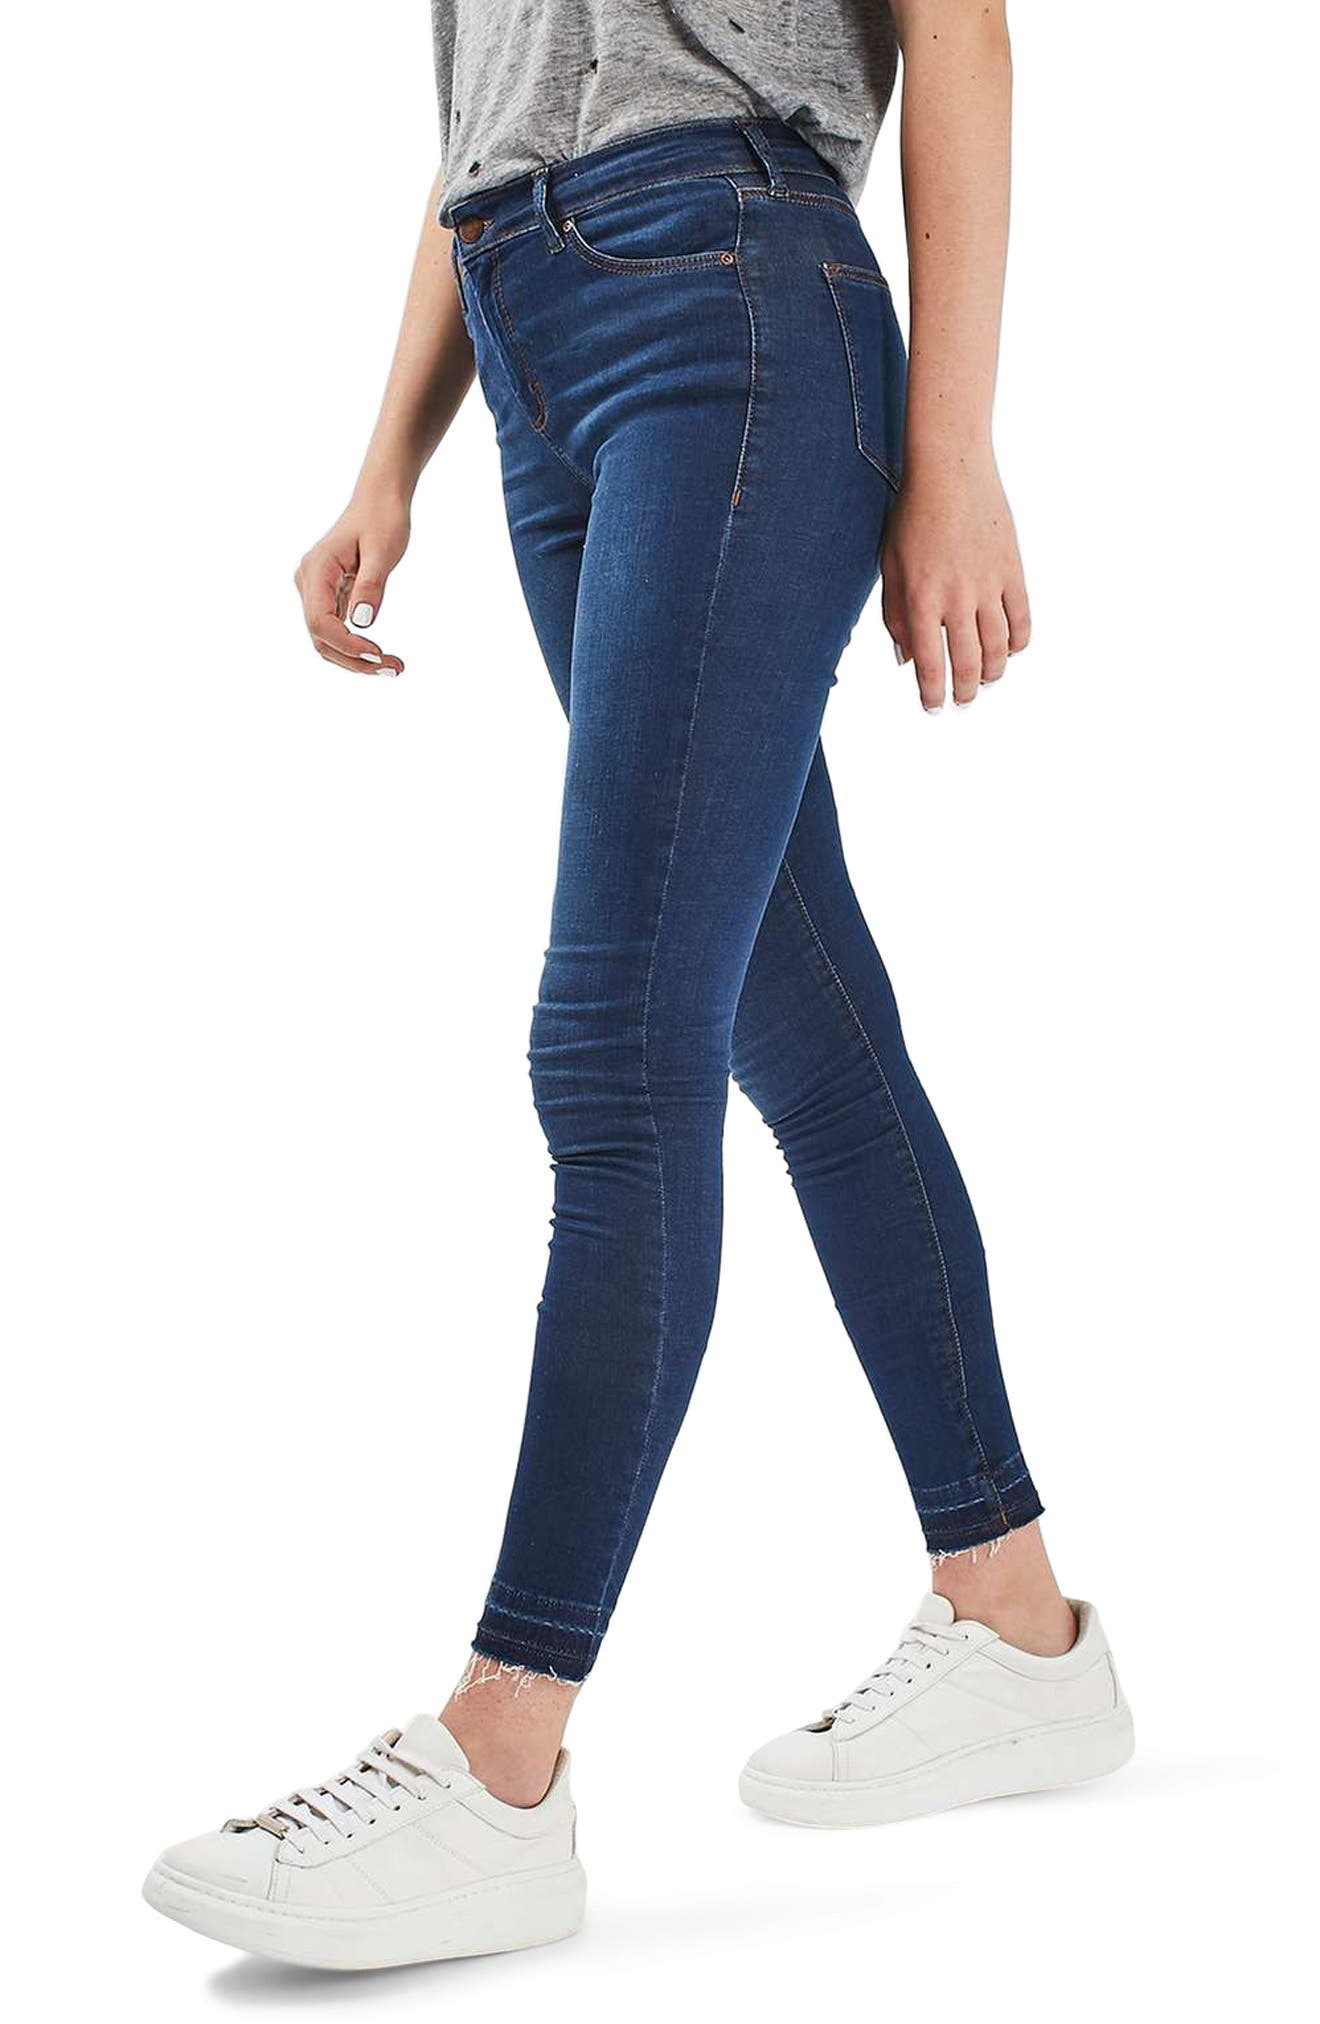 Leigh Release Hem Skinny Jeans,                         Main,                         color, Indigo